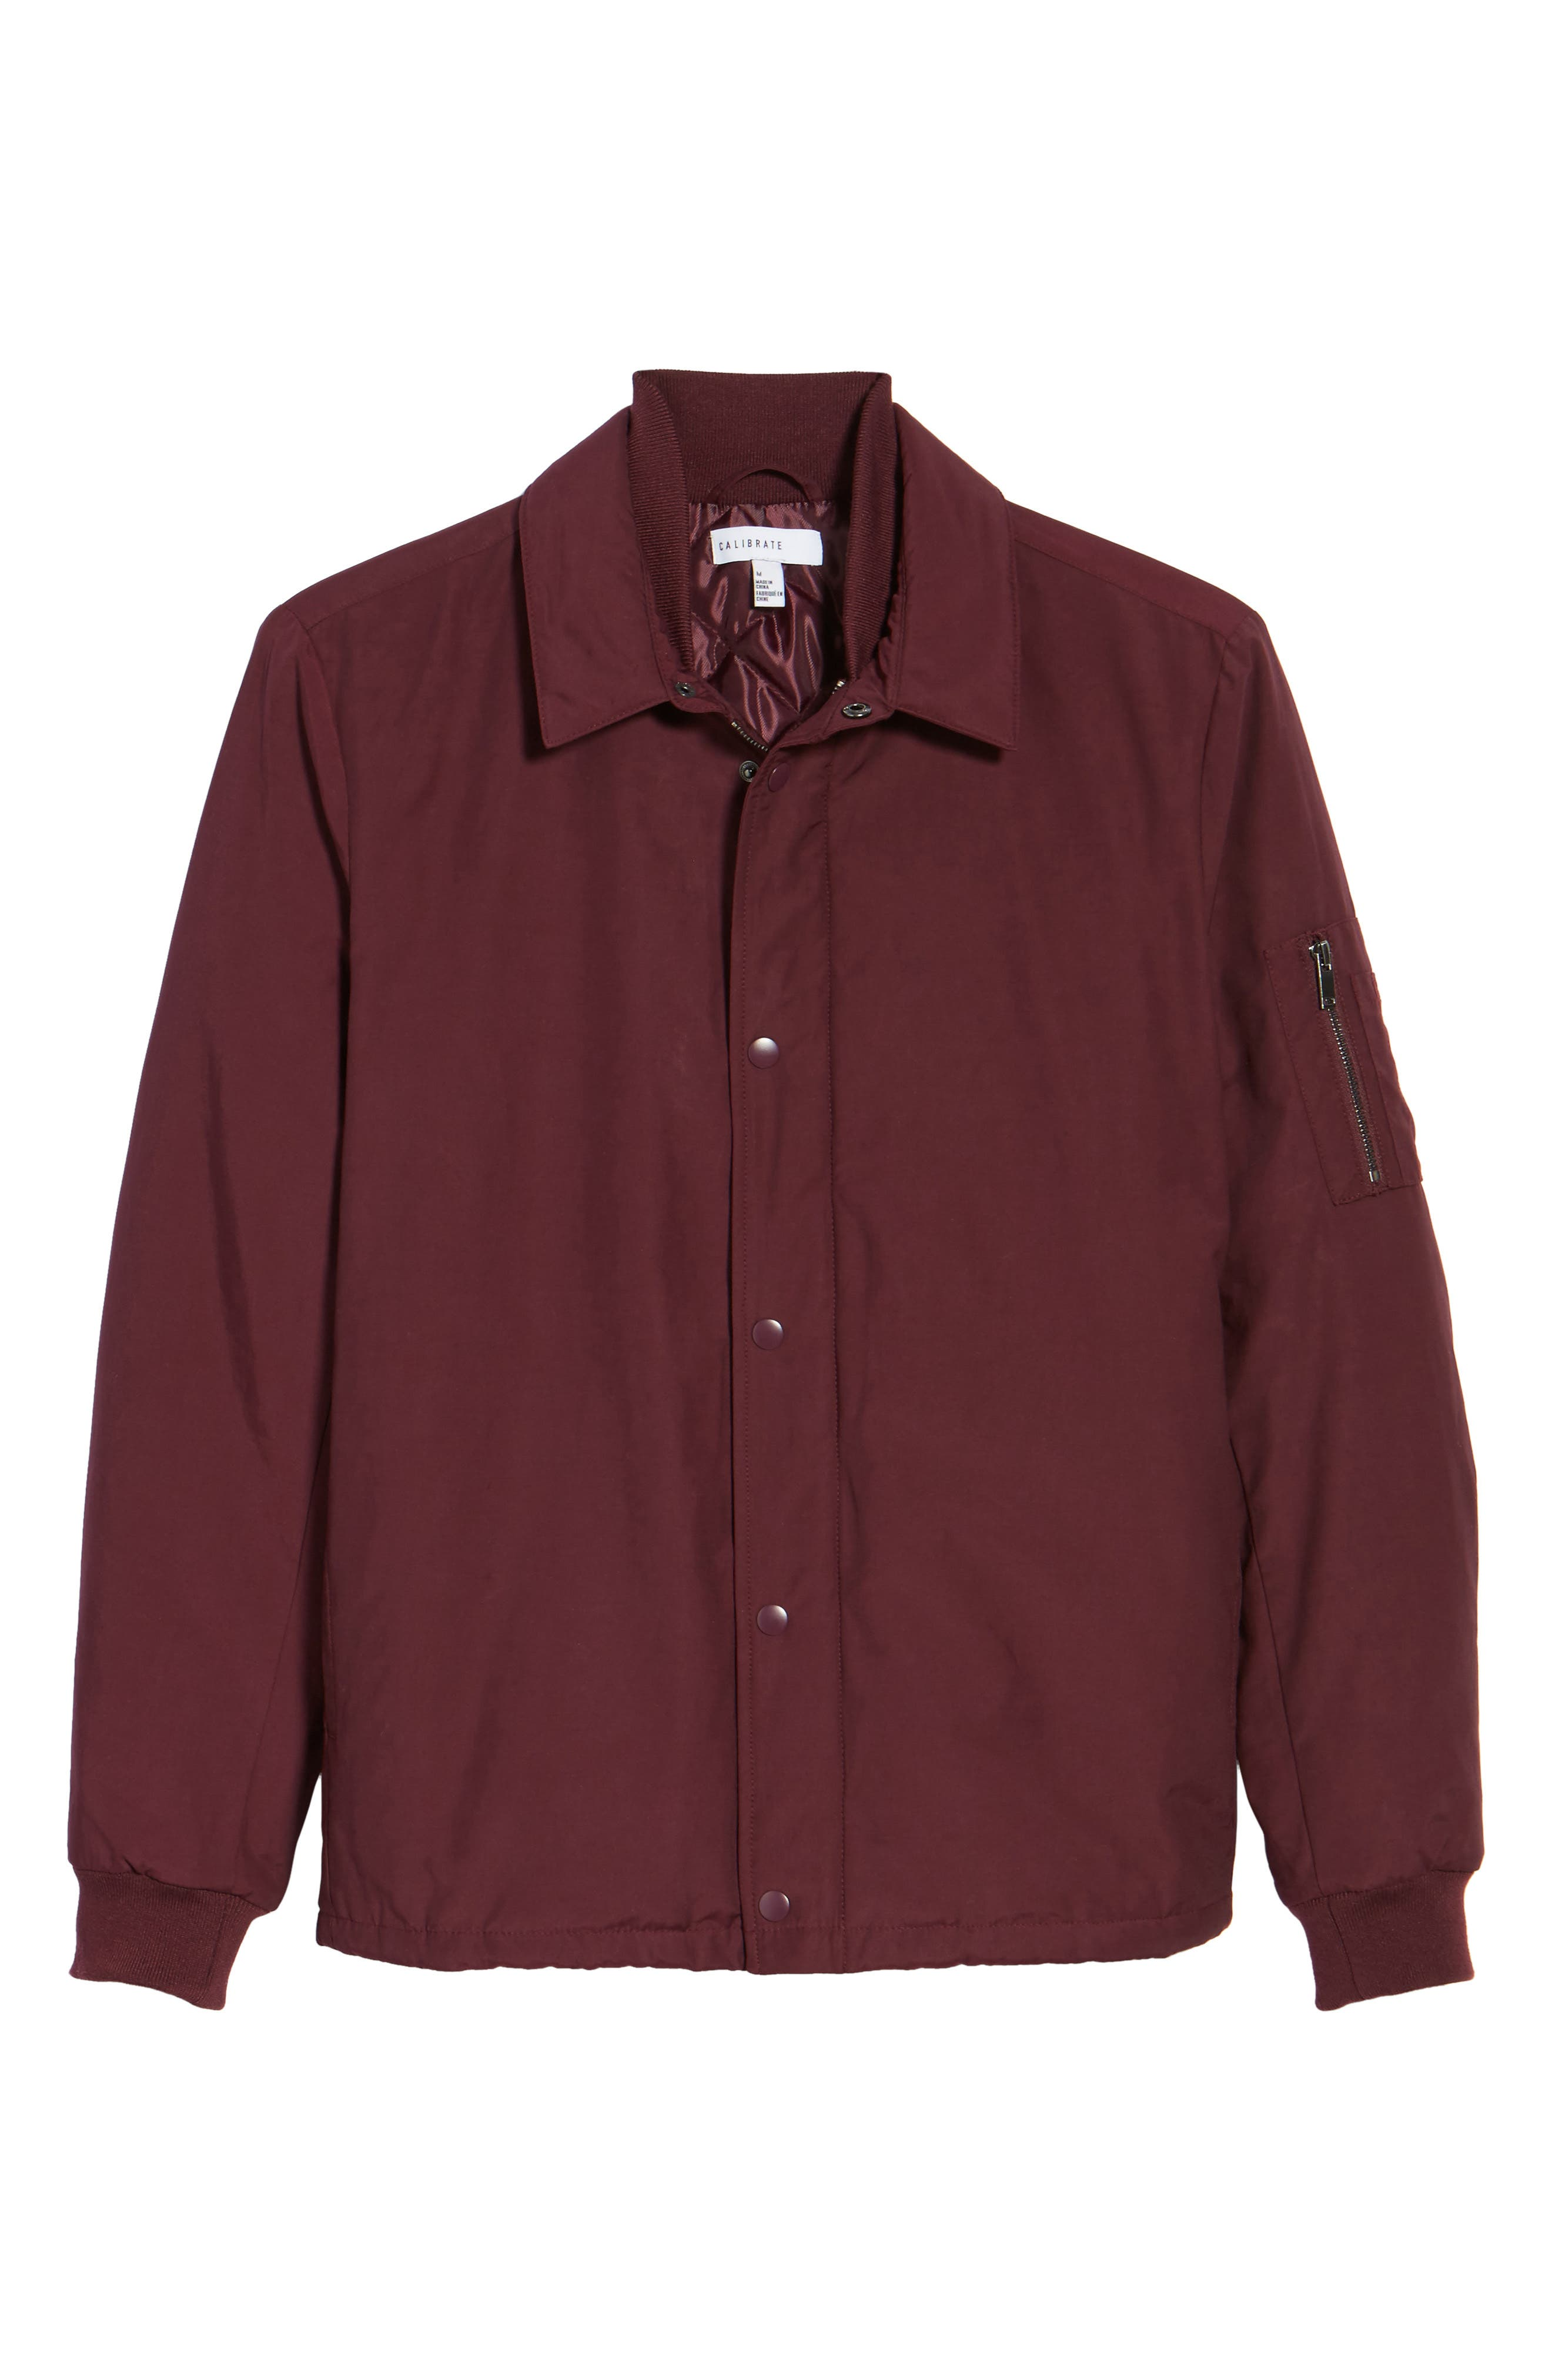 Collared Bomber Jacket,                             Alternate thumbnail 10, color,